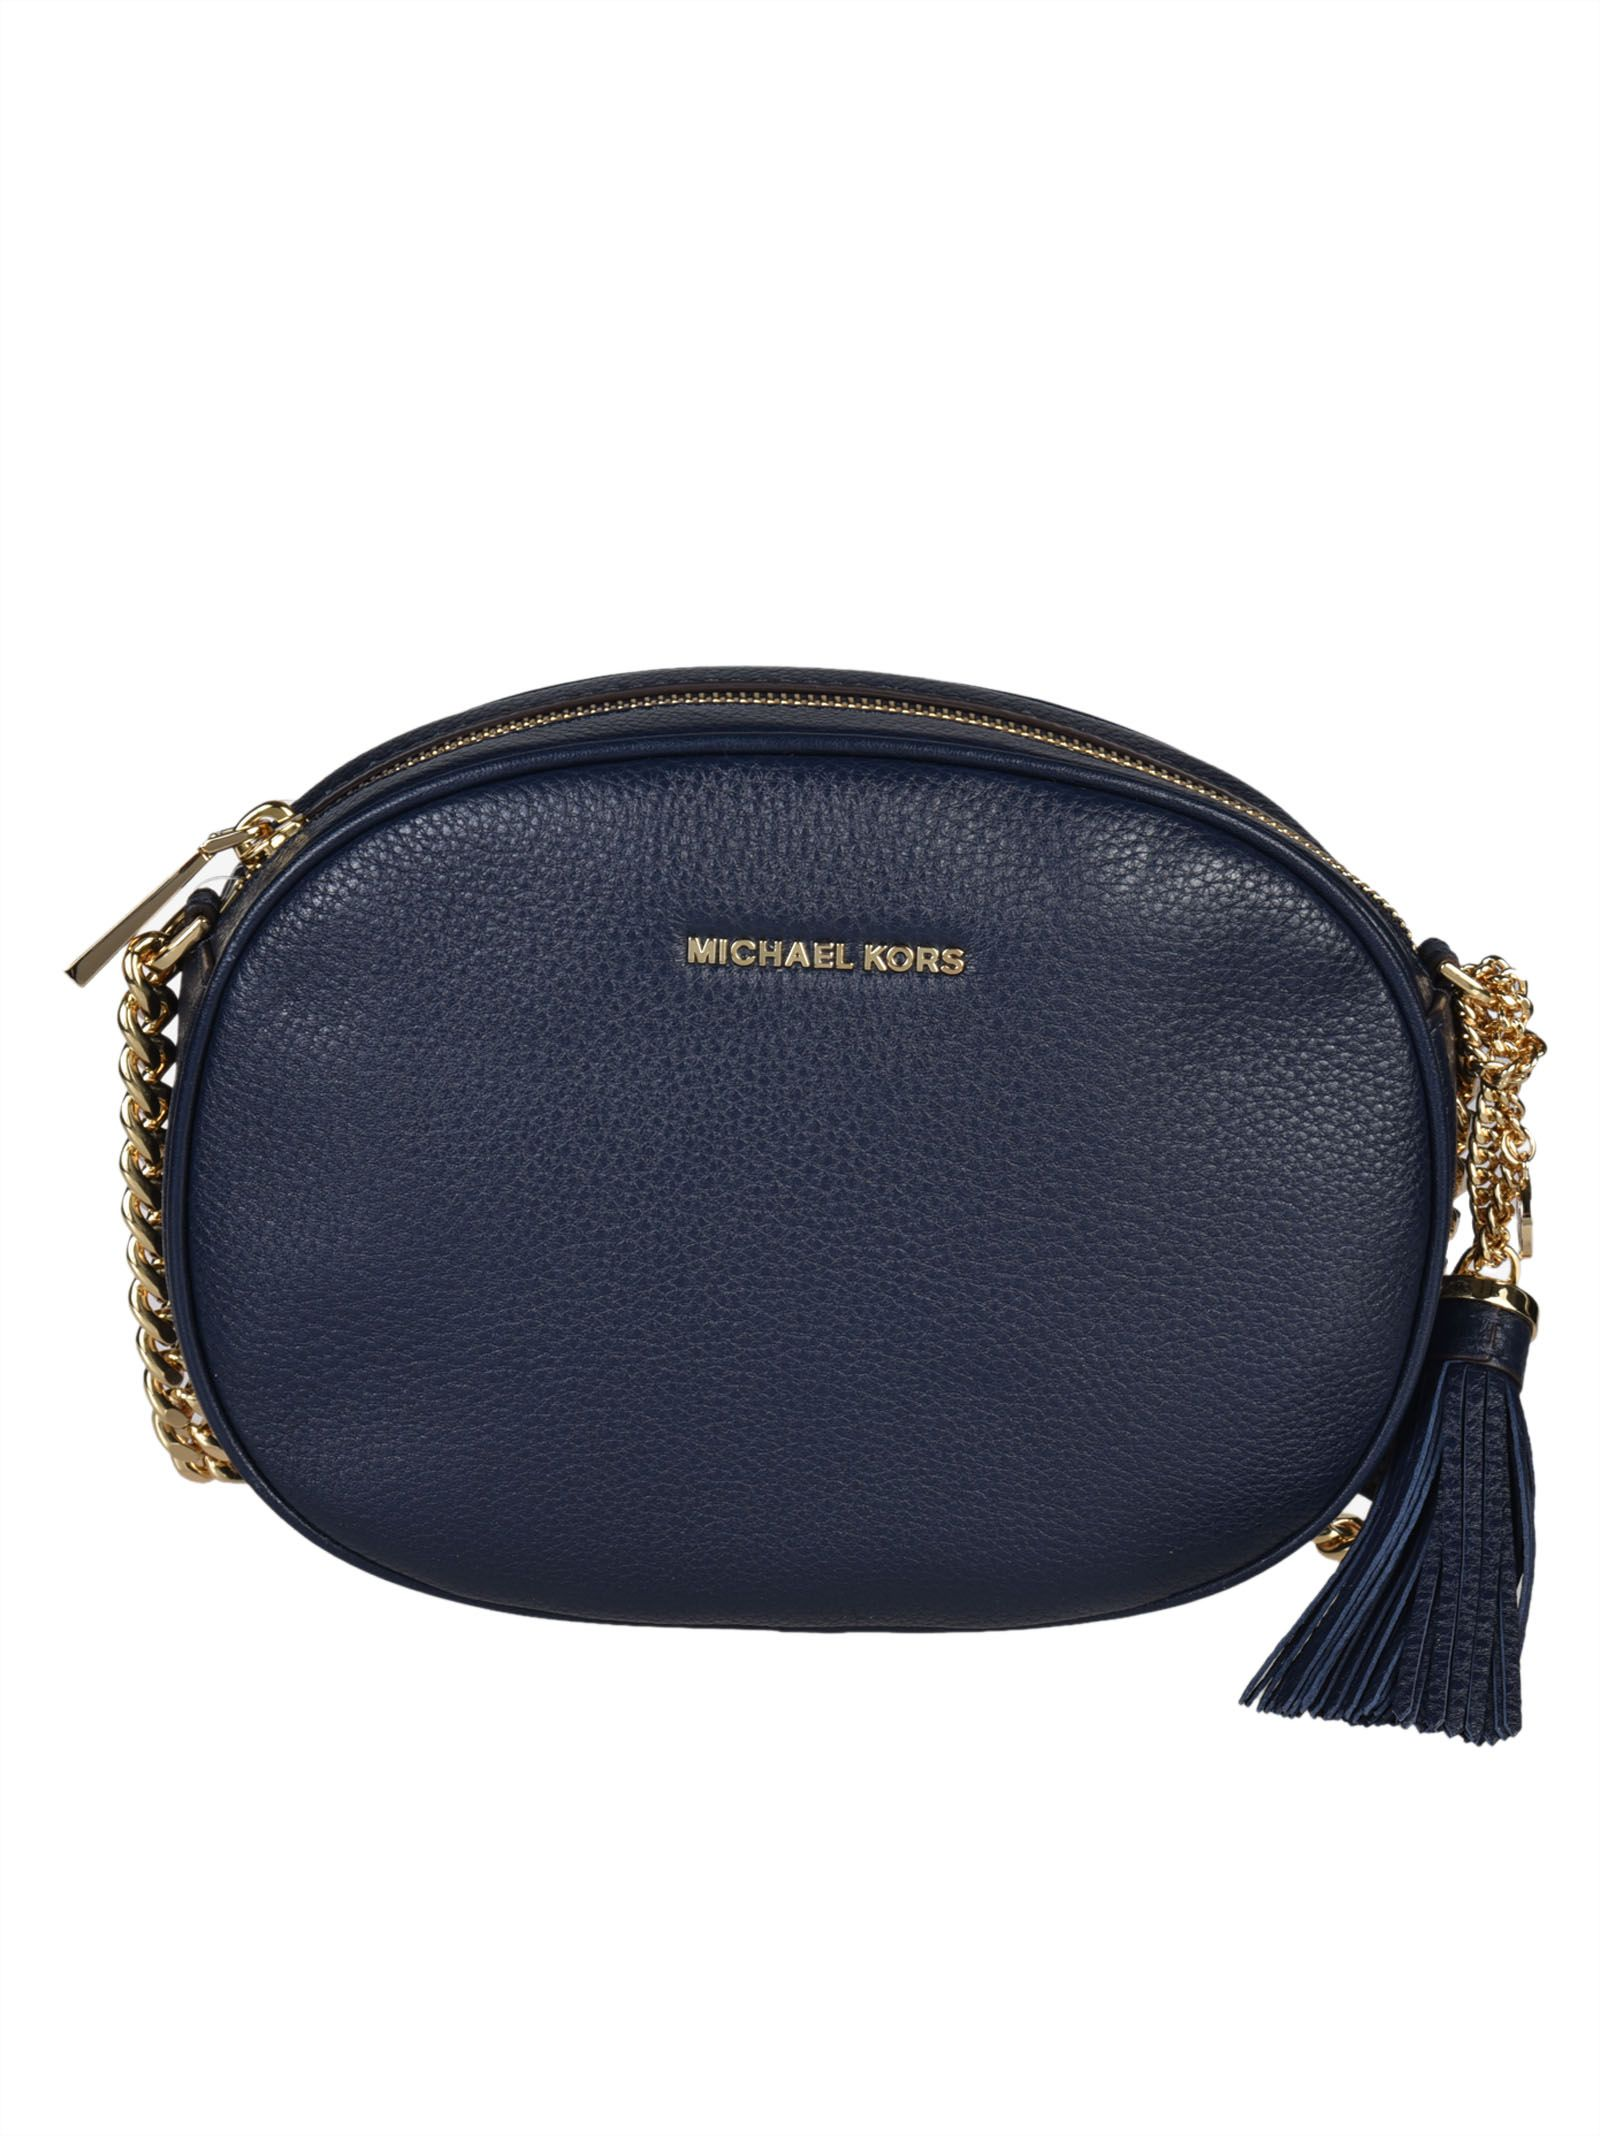 Michael Kors Ginny Medium Messenger Shoulder Bag